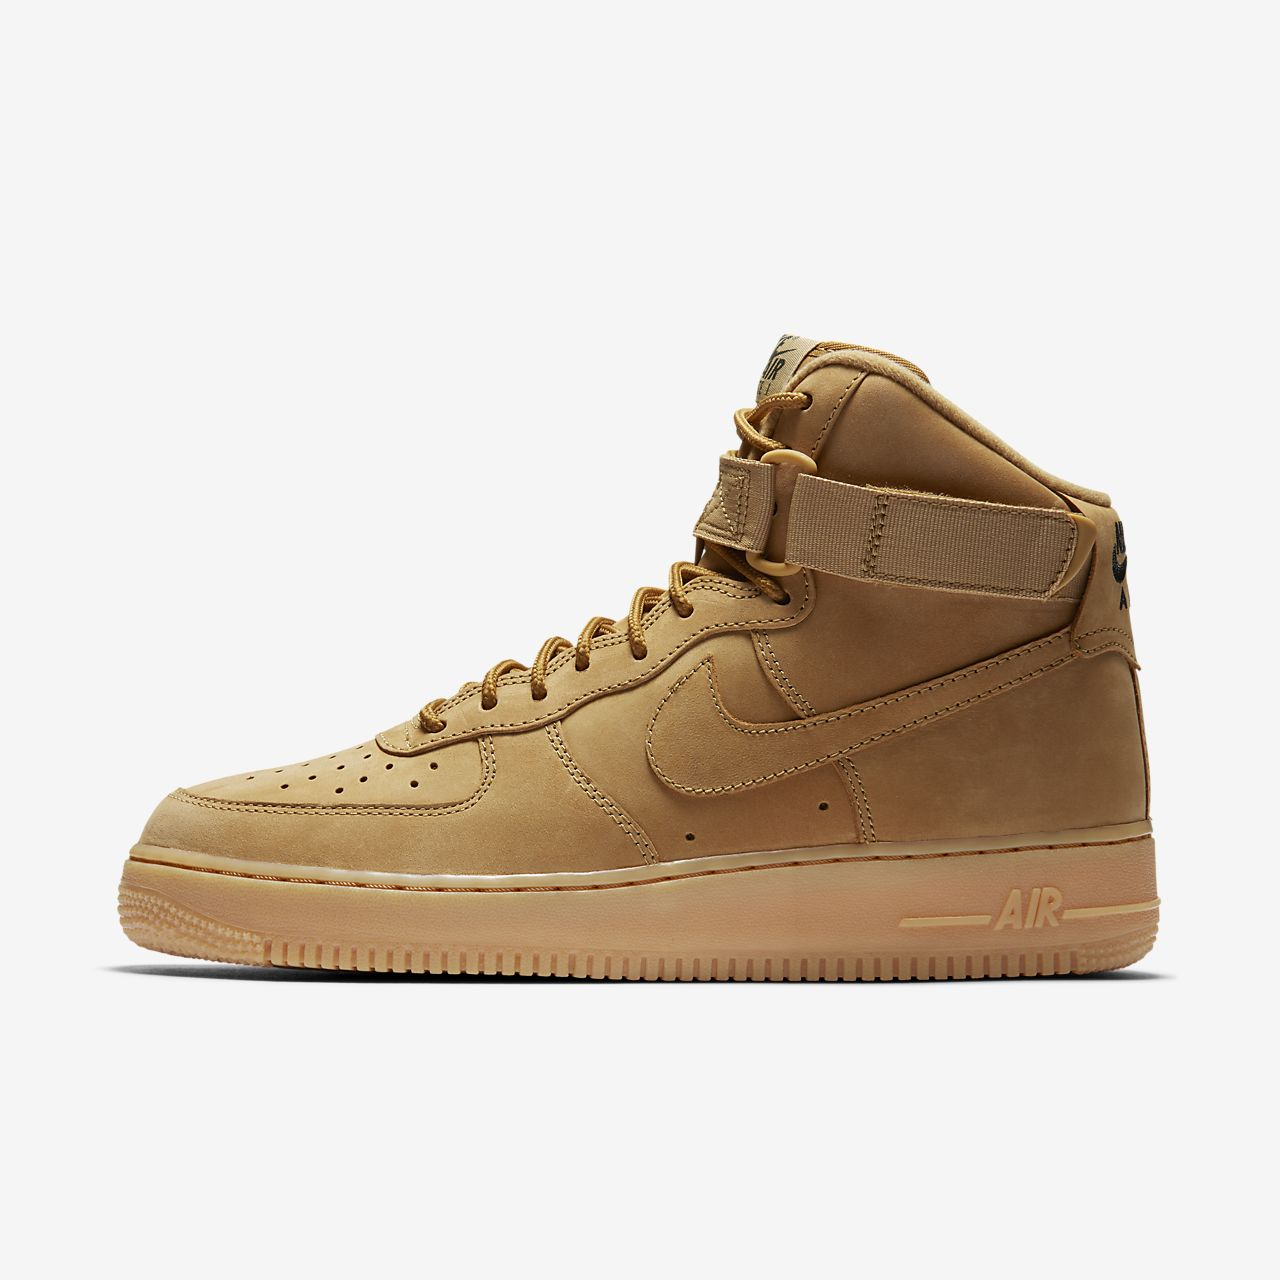 100% authentic 7457a b4d4e ... Nike Air Force 1 High 07 LV8 WB - sko til mænd